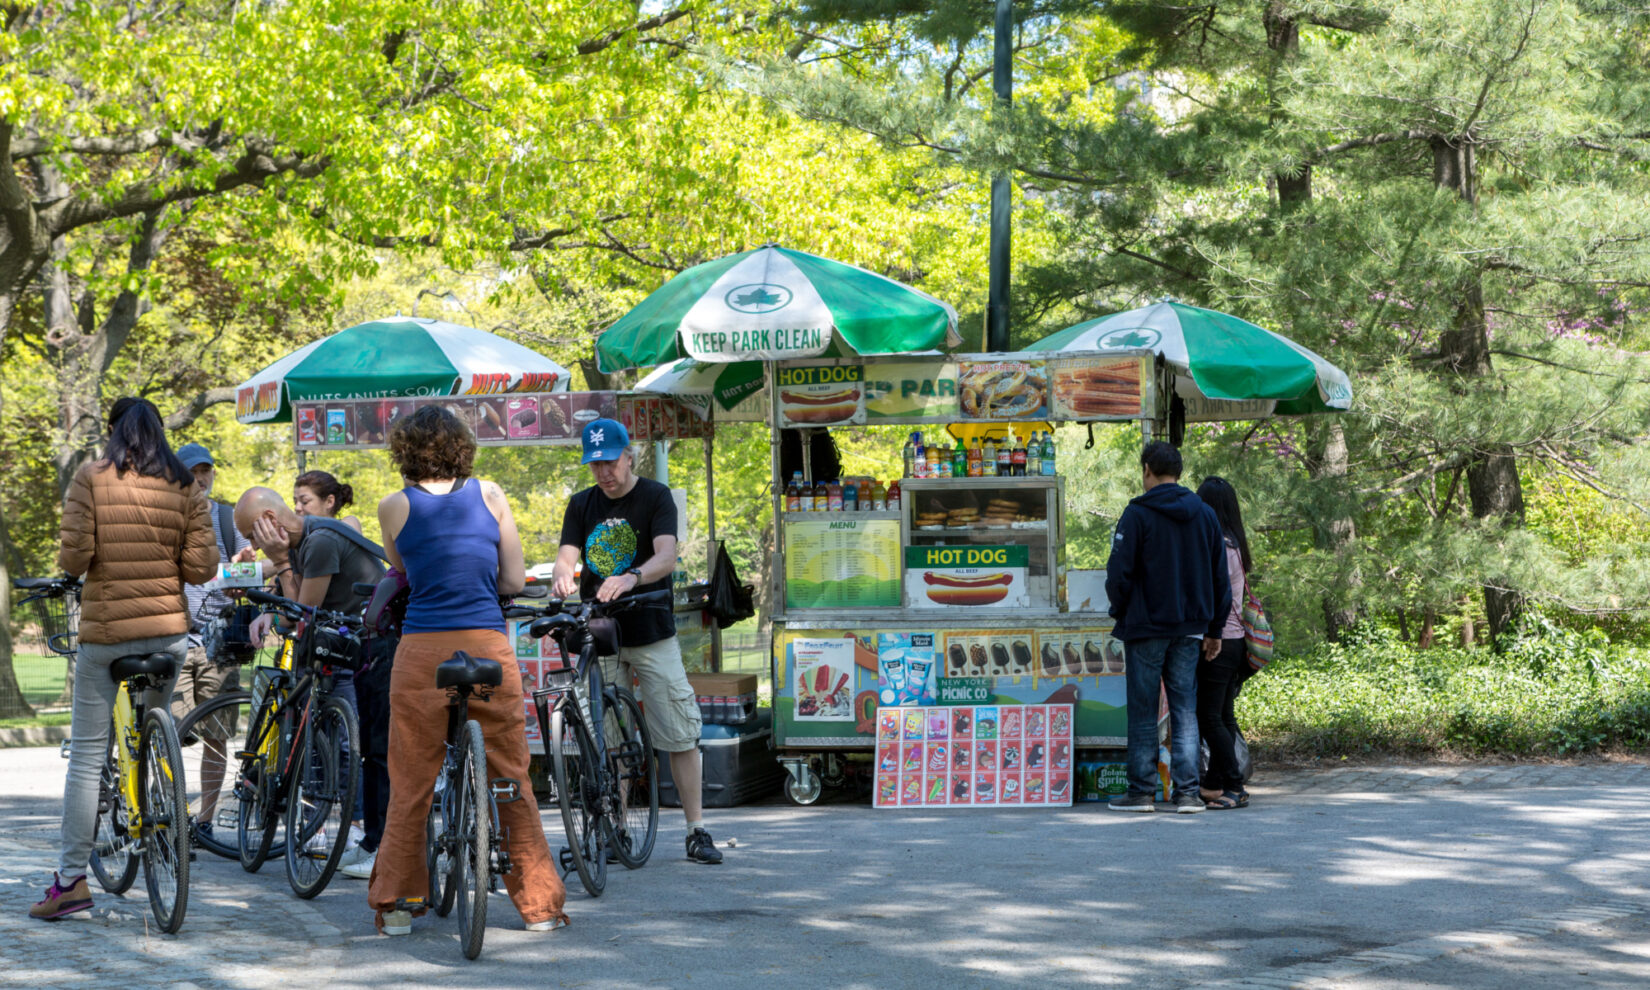 A typical Park food vendor, selling hot dogs, ice cream treats, and beverages under green and white umbrellas.